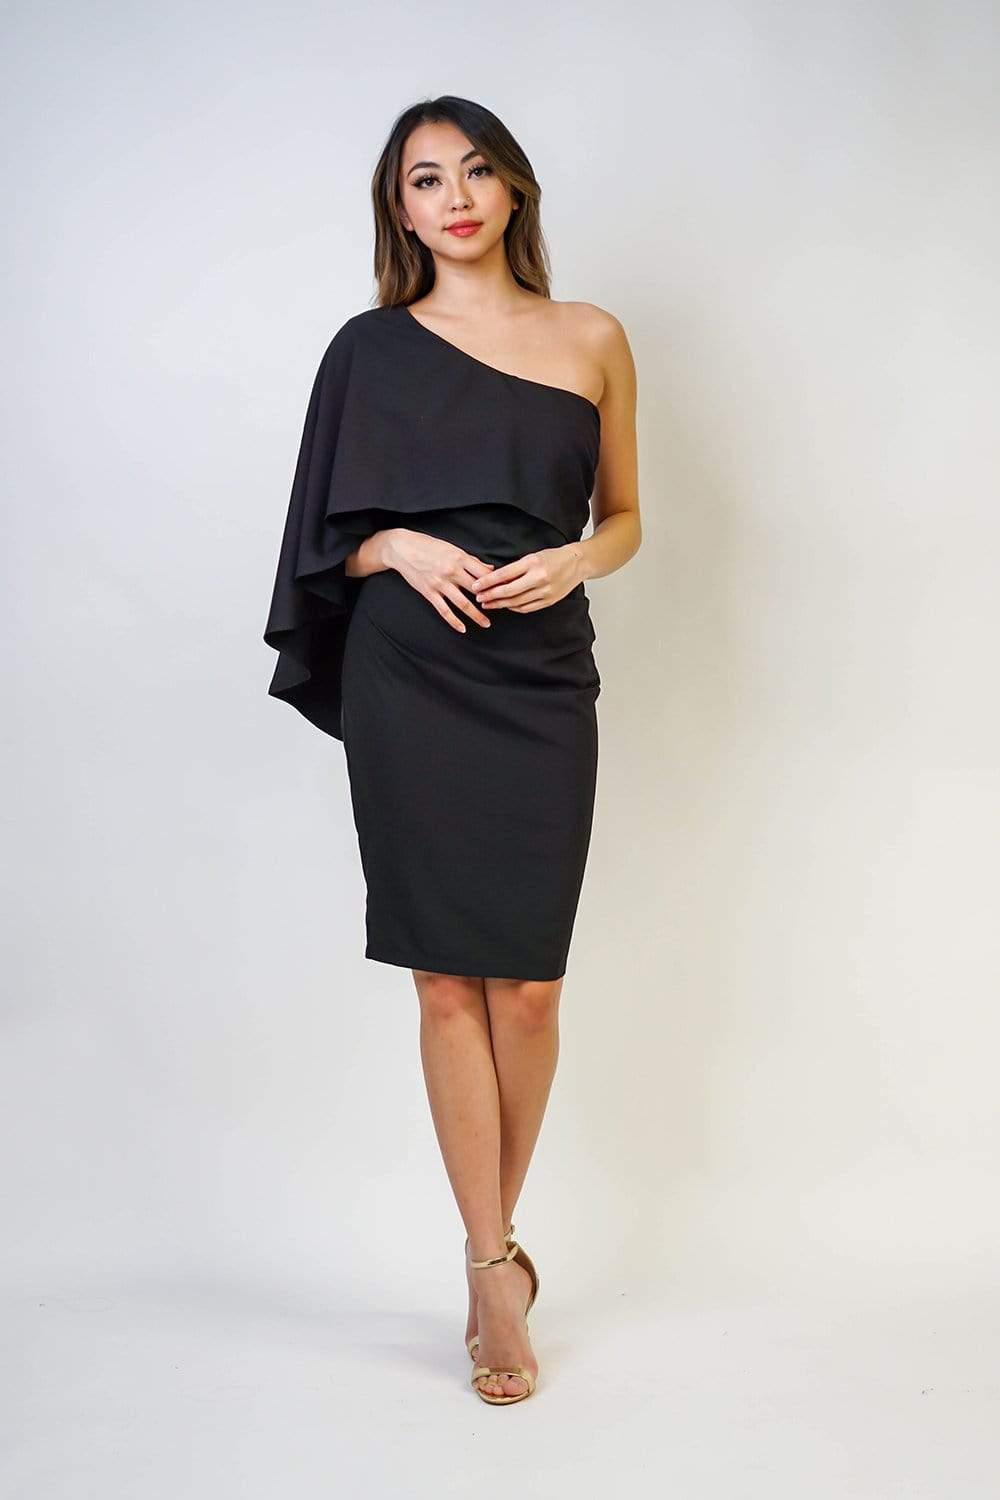 Strut & Bolt SBT DRESS Dramatic One Shoulder Dress